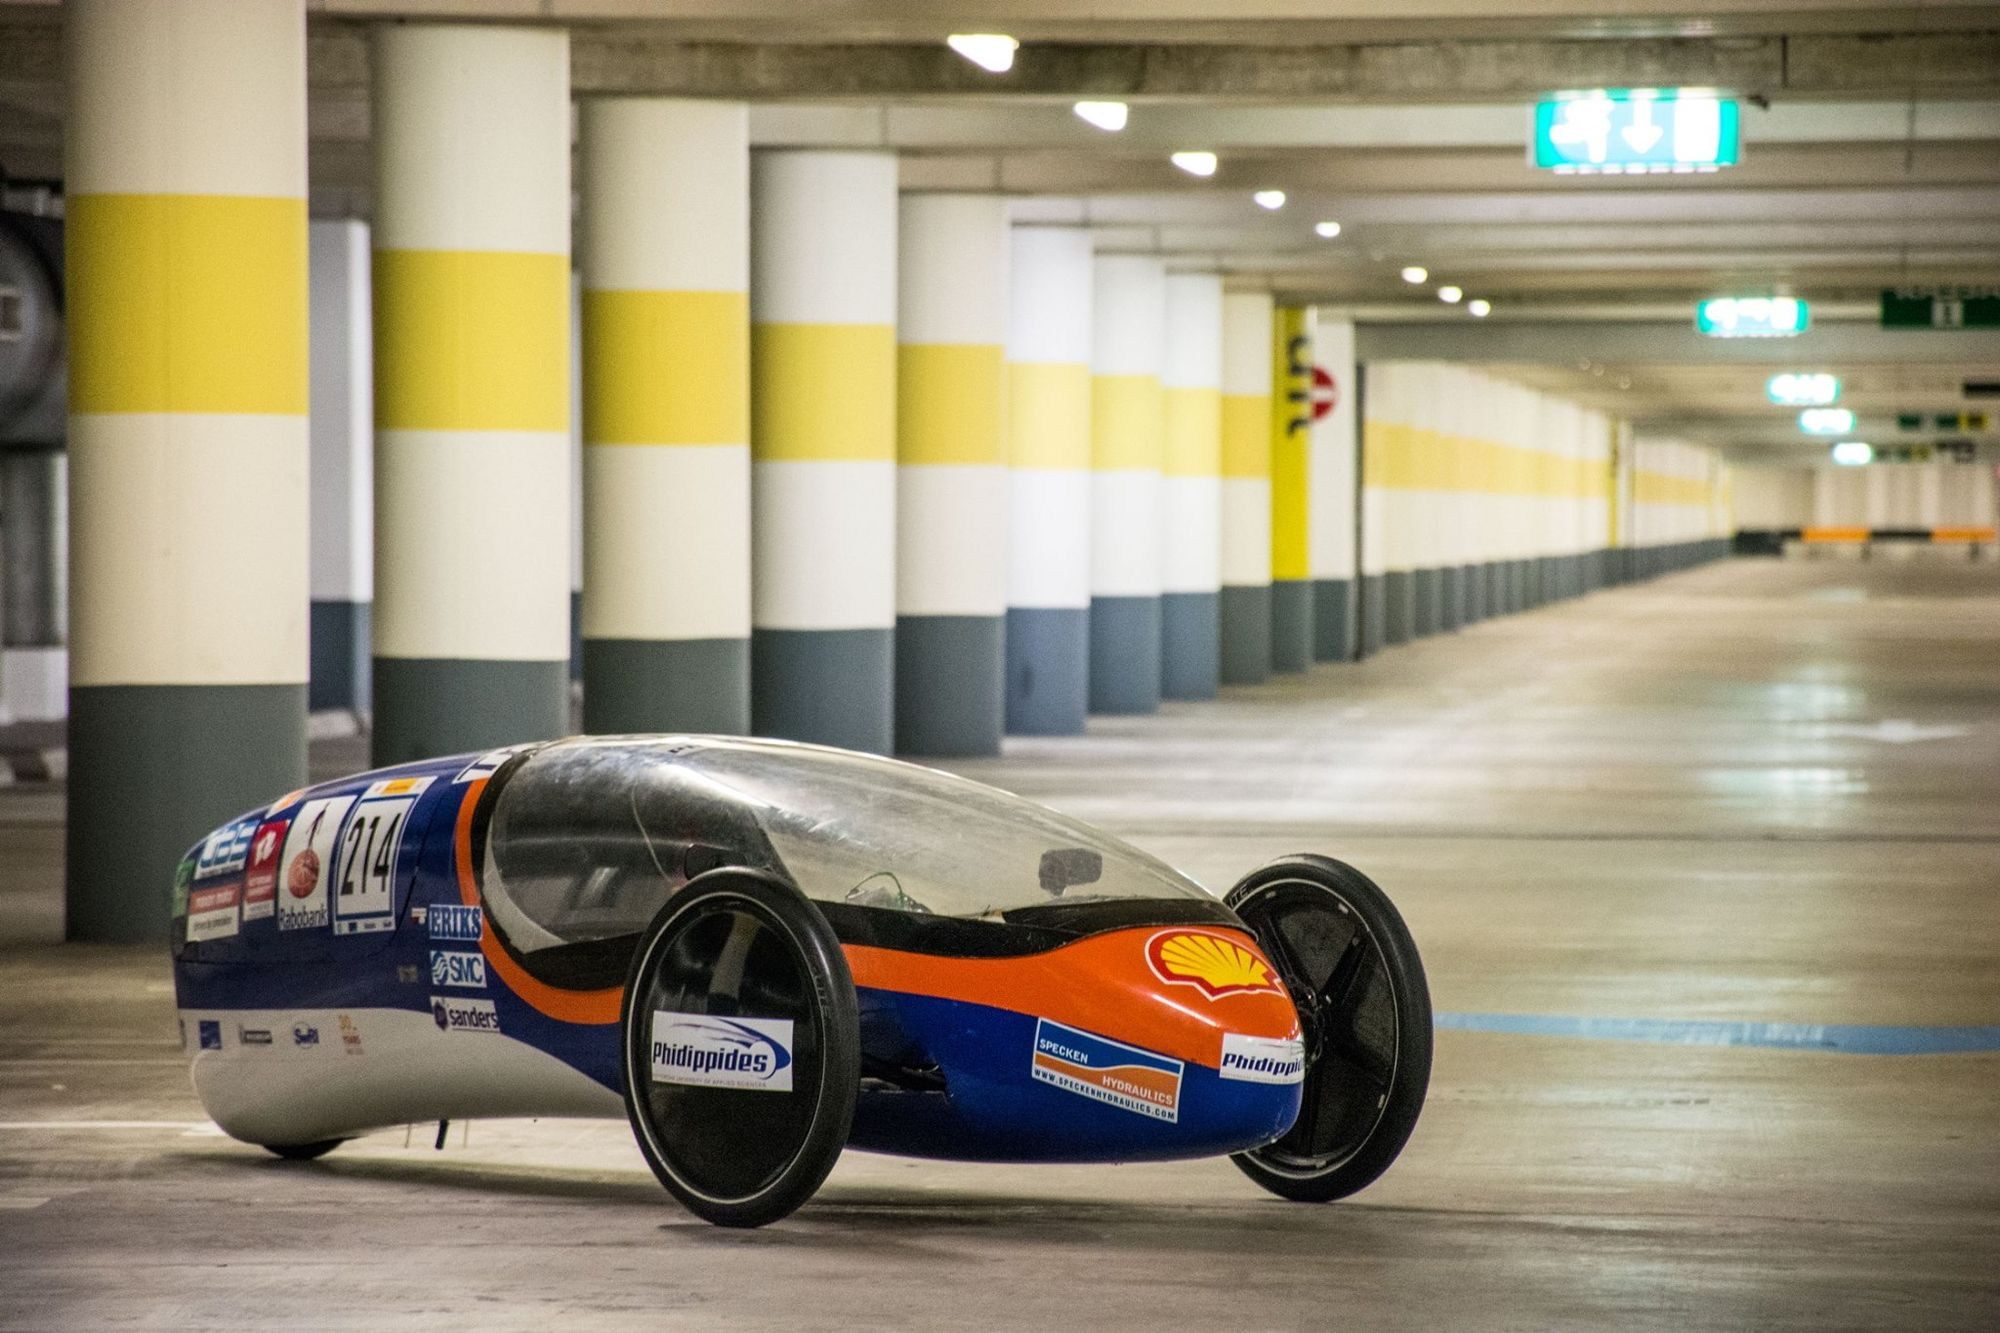 Team Phidippides want to make Europes most durable vehicle, Zemic Europe helped